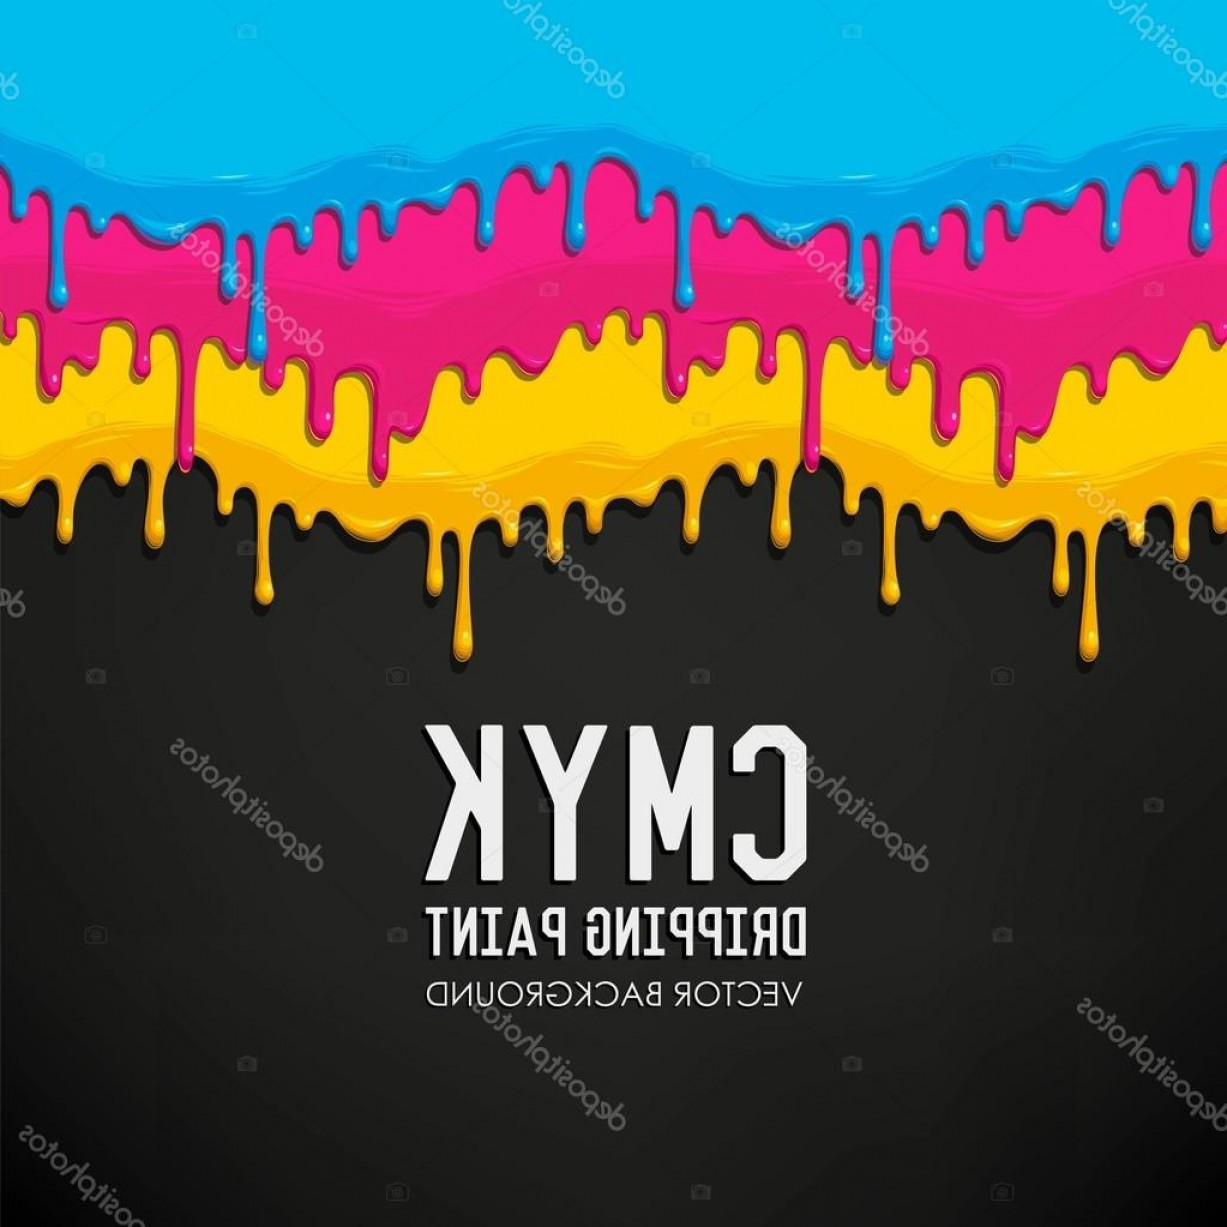 Dripping Paint Vector Illustration: Stock Illustration Dripping Paint Vector Background